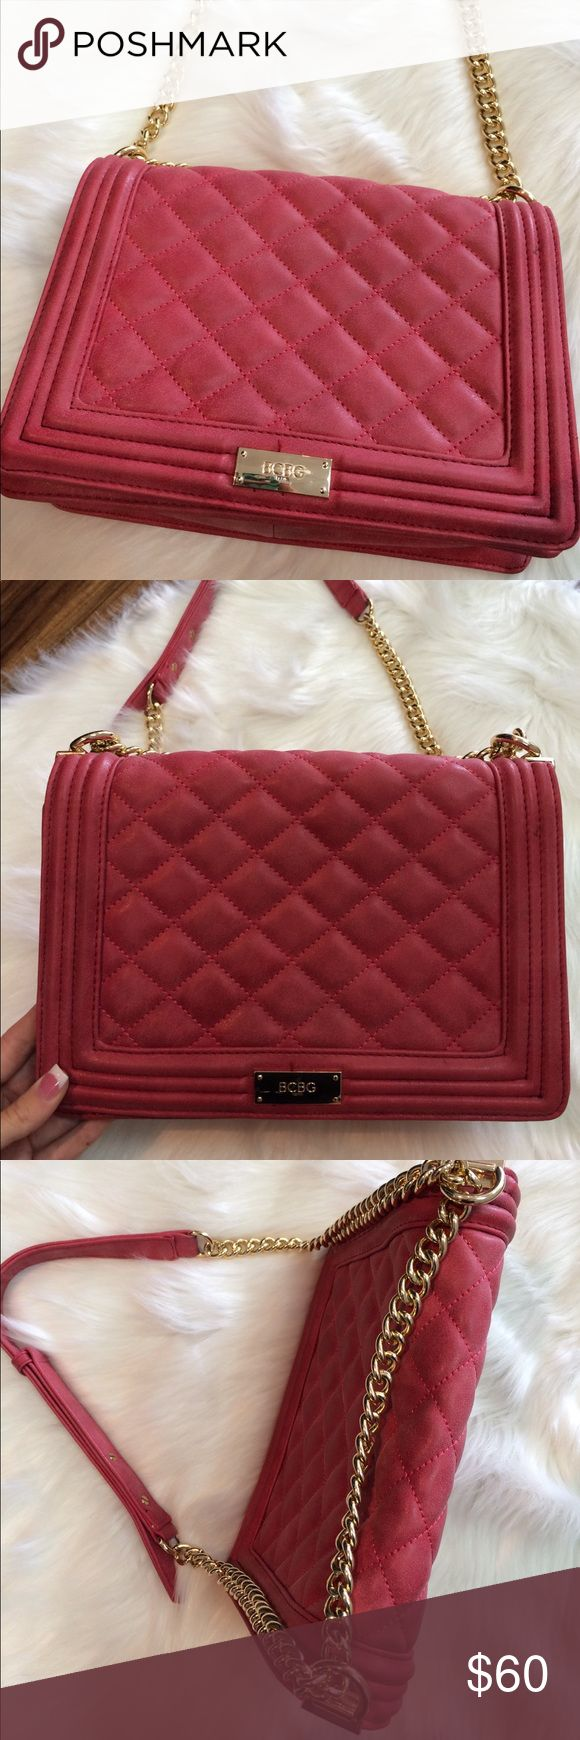 BCBG Paris Quilted Shoulder Bag Used ones. In brand new condition. This bag is GORGEOUS! Soft leather material. No trades. Like a wine color BCBG Bags Shoulder Bags